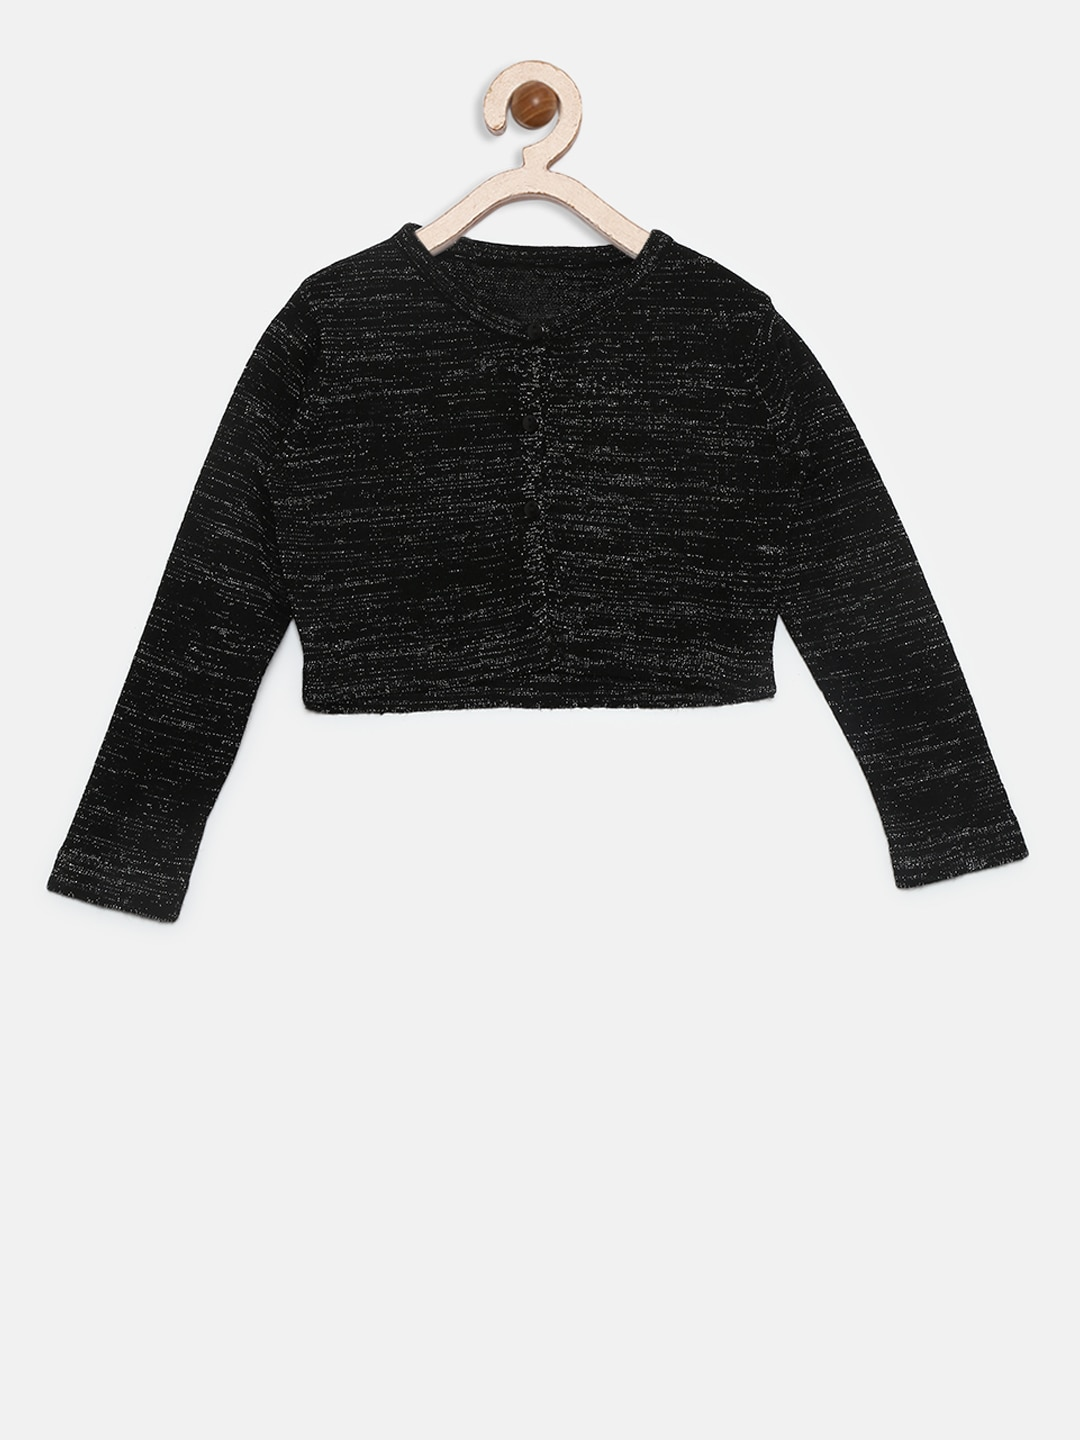 551d9c5a90b7 Girl s Sweaters - Buy Sweaters for Girls Online in India